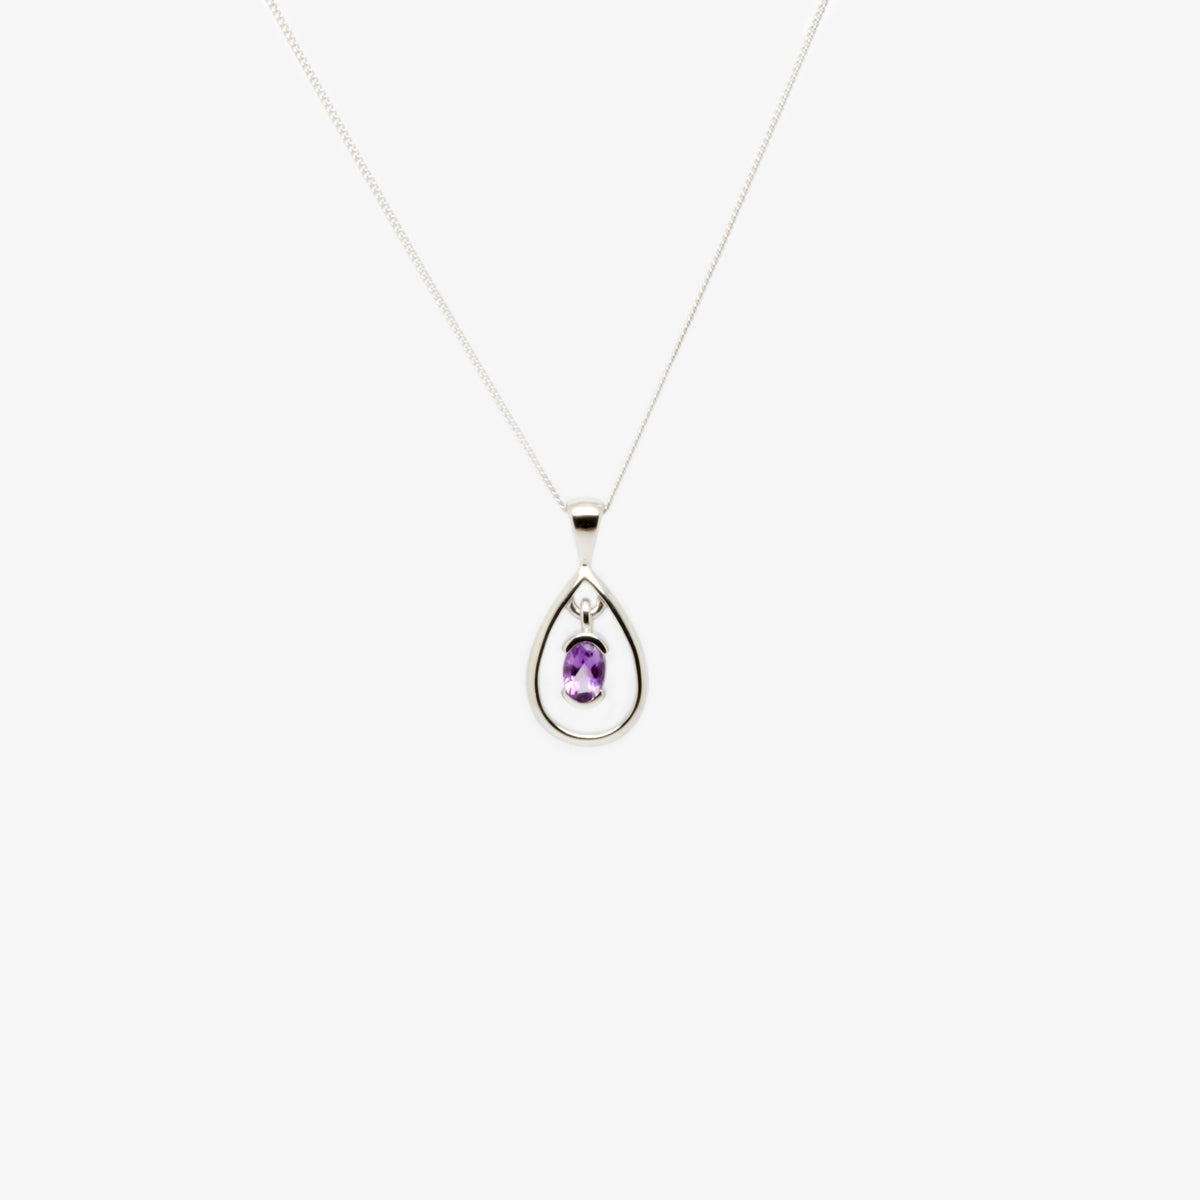 Front view picture of the amethyst and silver pendant necklace.